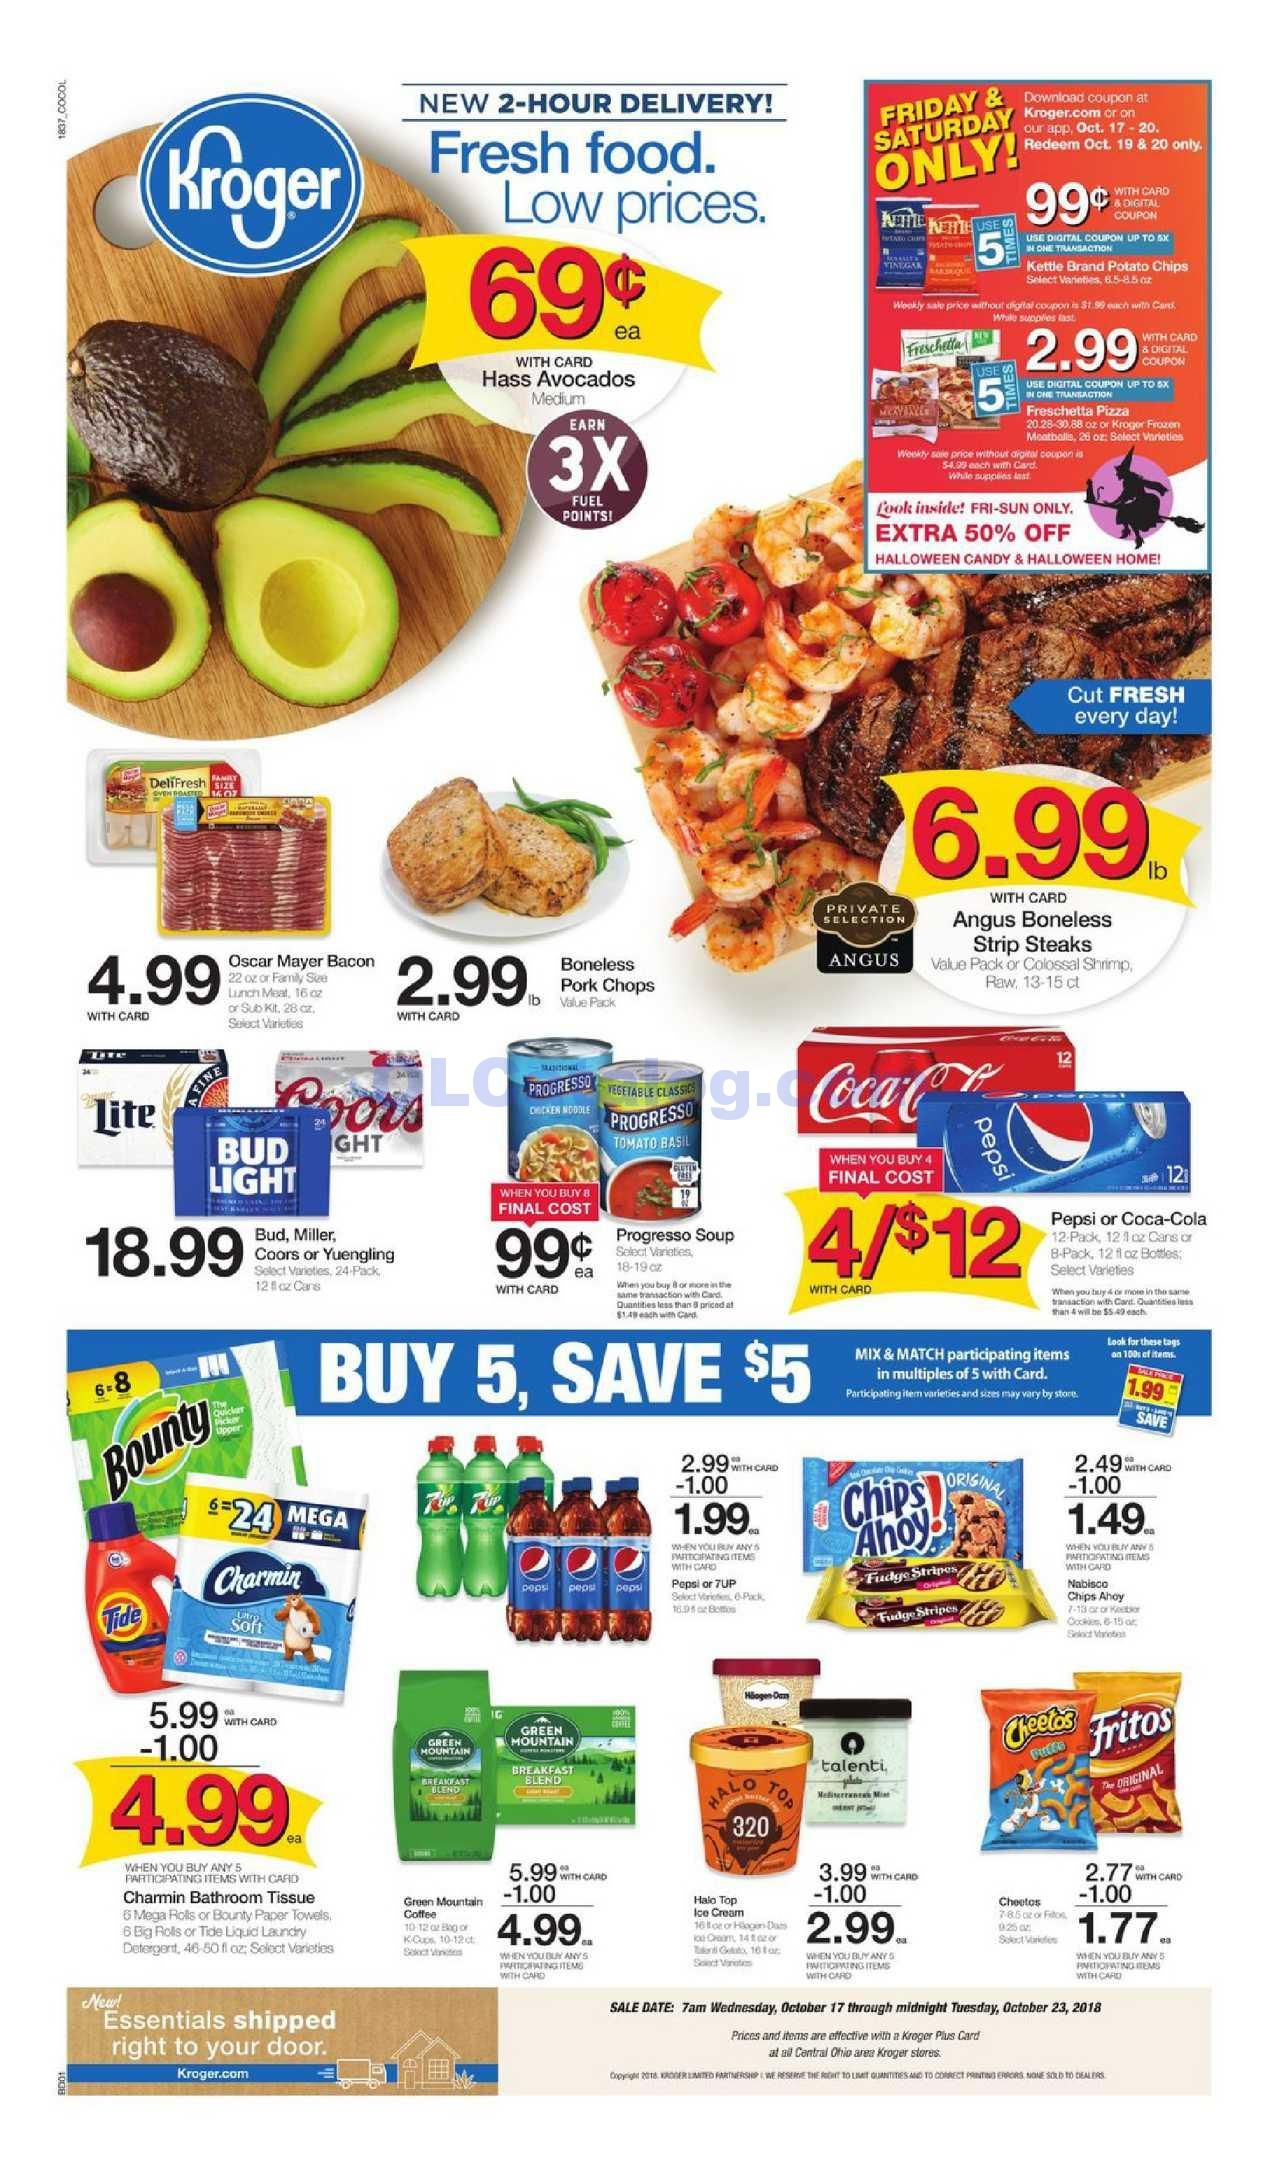 Kroger Weekly Ad March 6 12, 2019 (With images) Kroger